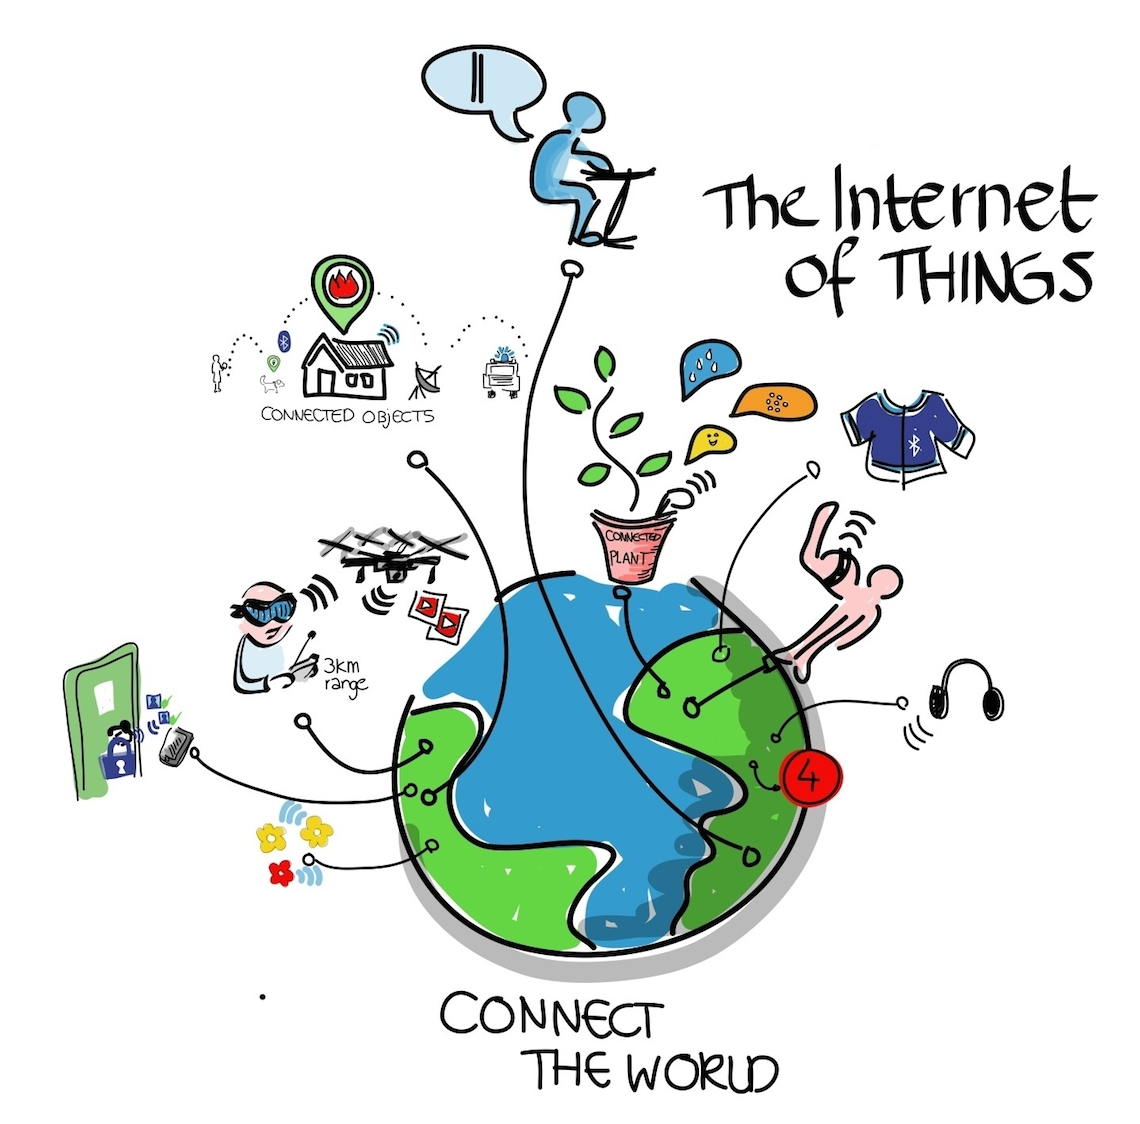 Internet of things diagram author signature